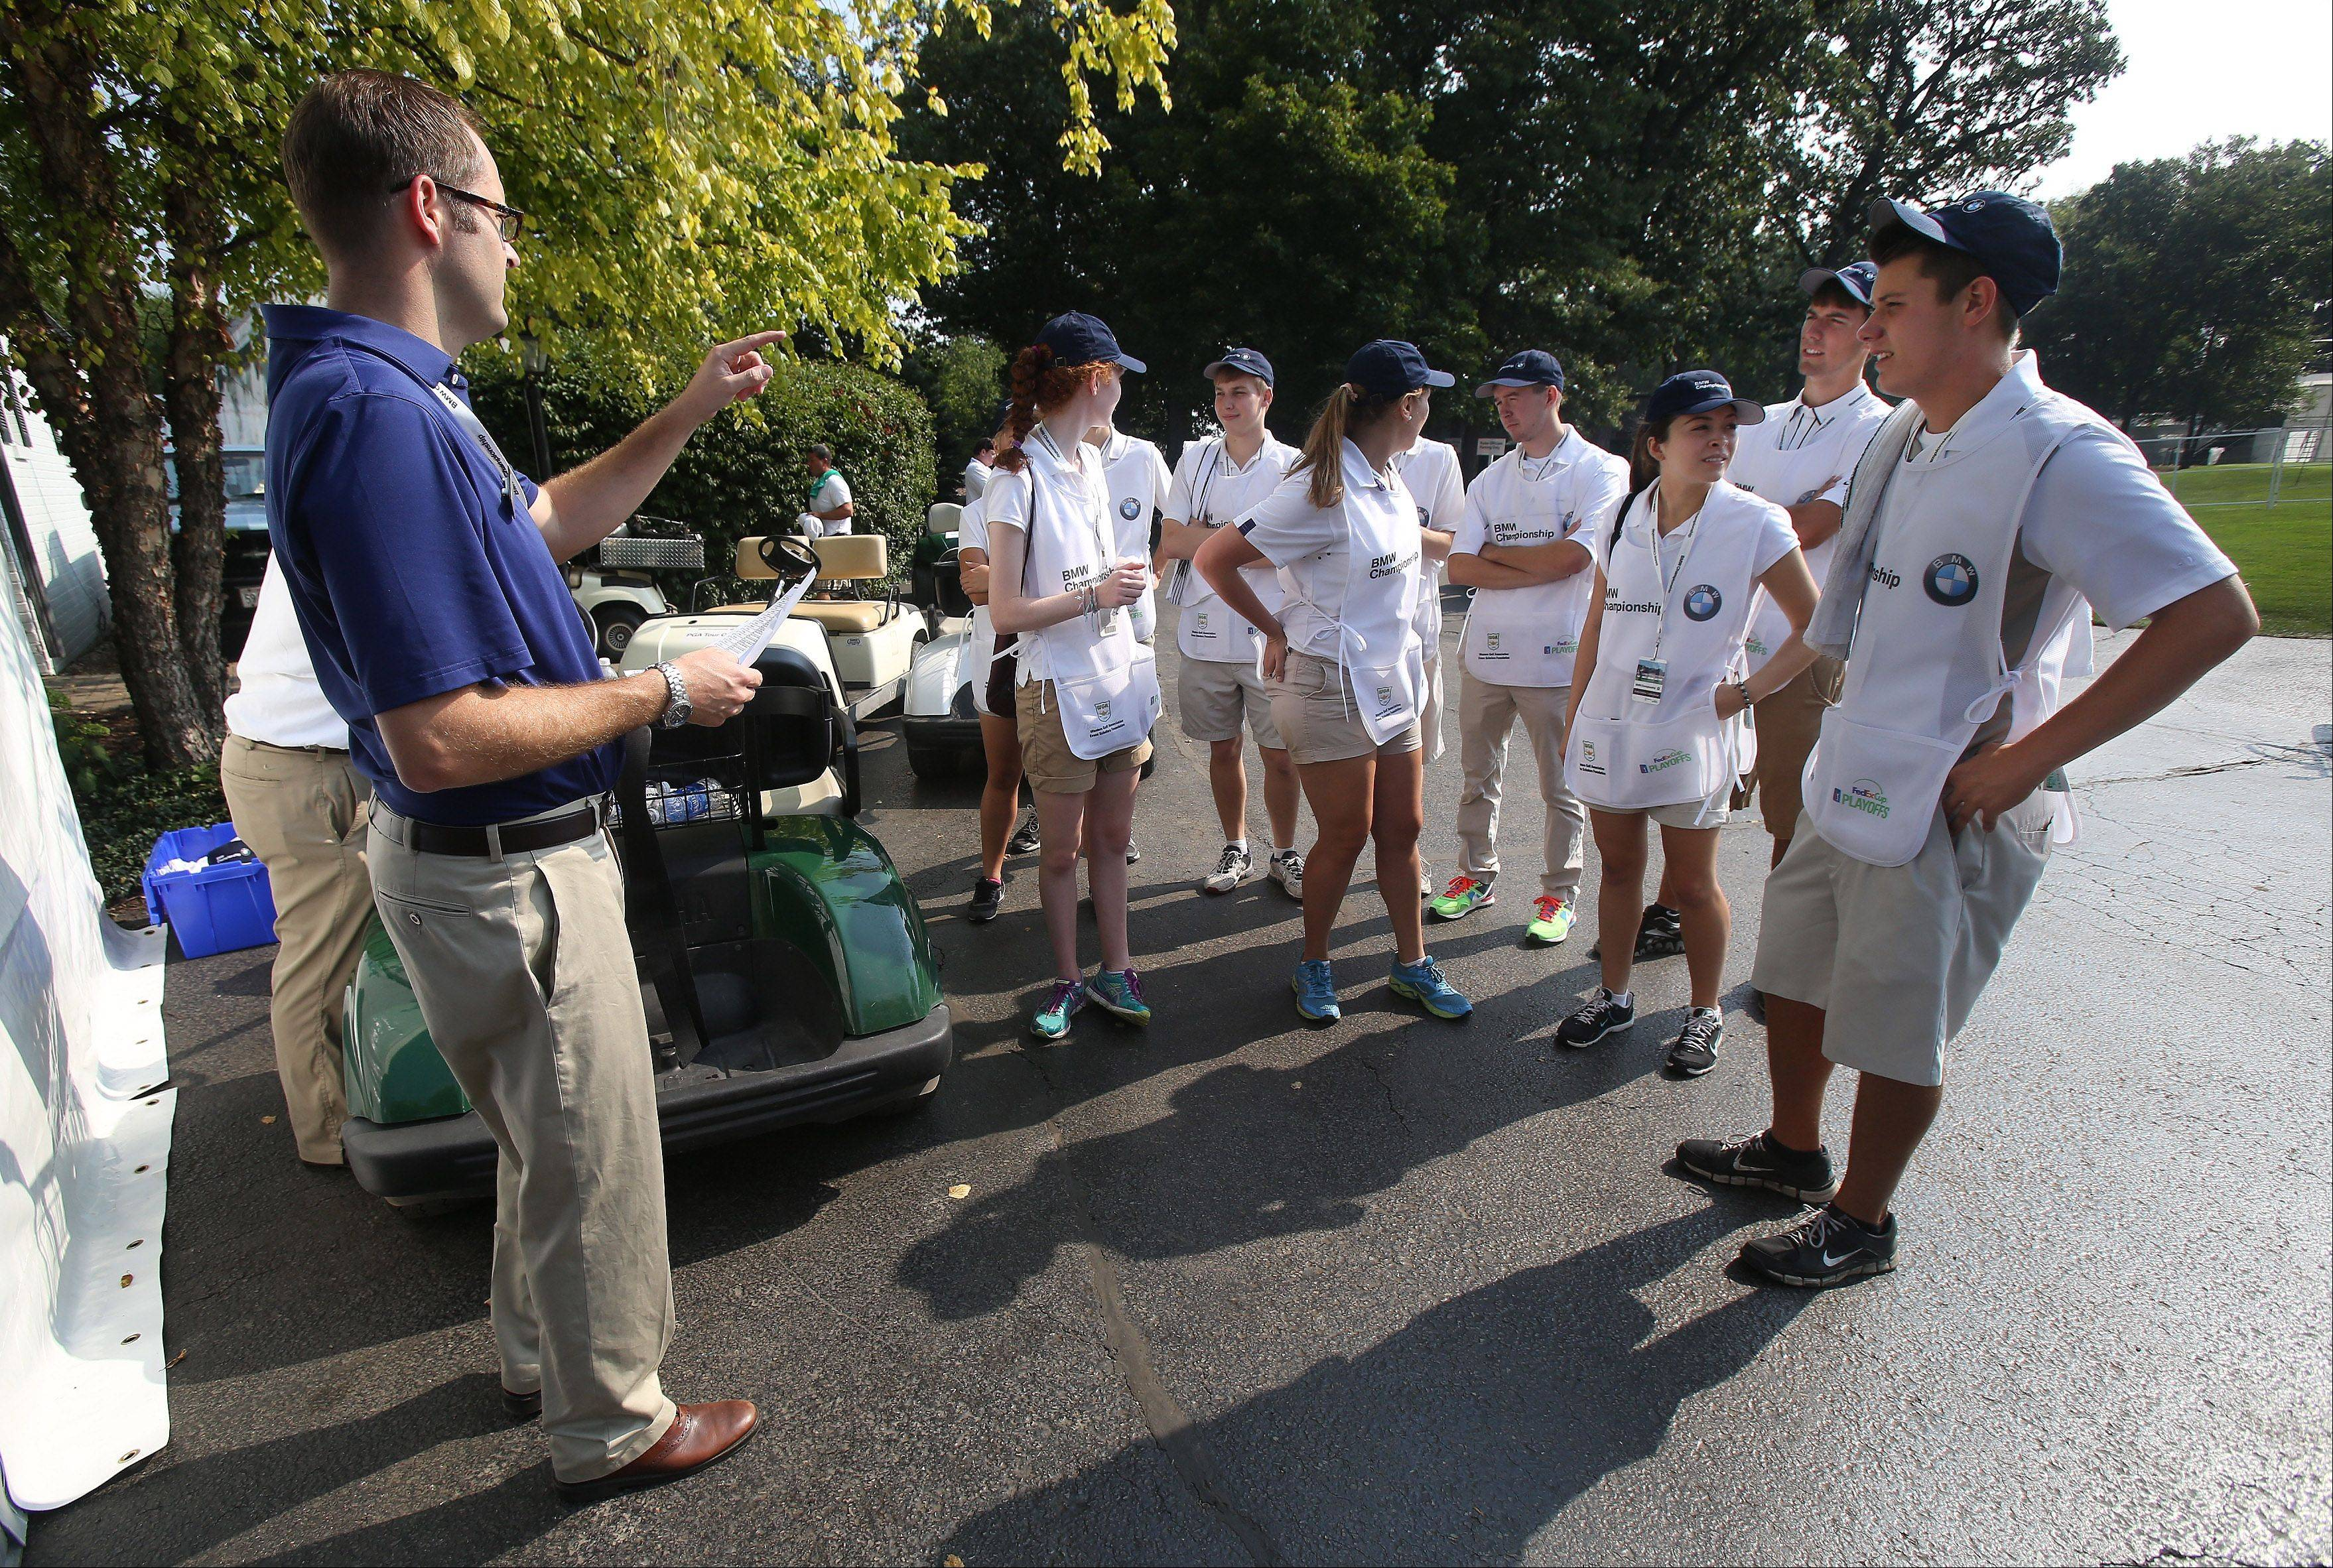 Brian Shell, Western Golf Association education director, talks to the volunteer caddies, all Evans Scholars, on the first day of the BMW Championship at Conway Farms Golf Club in Lake Forest.